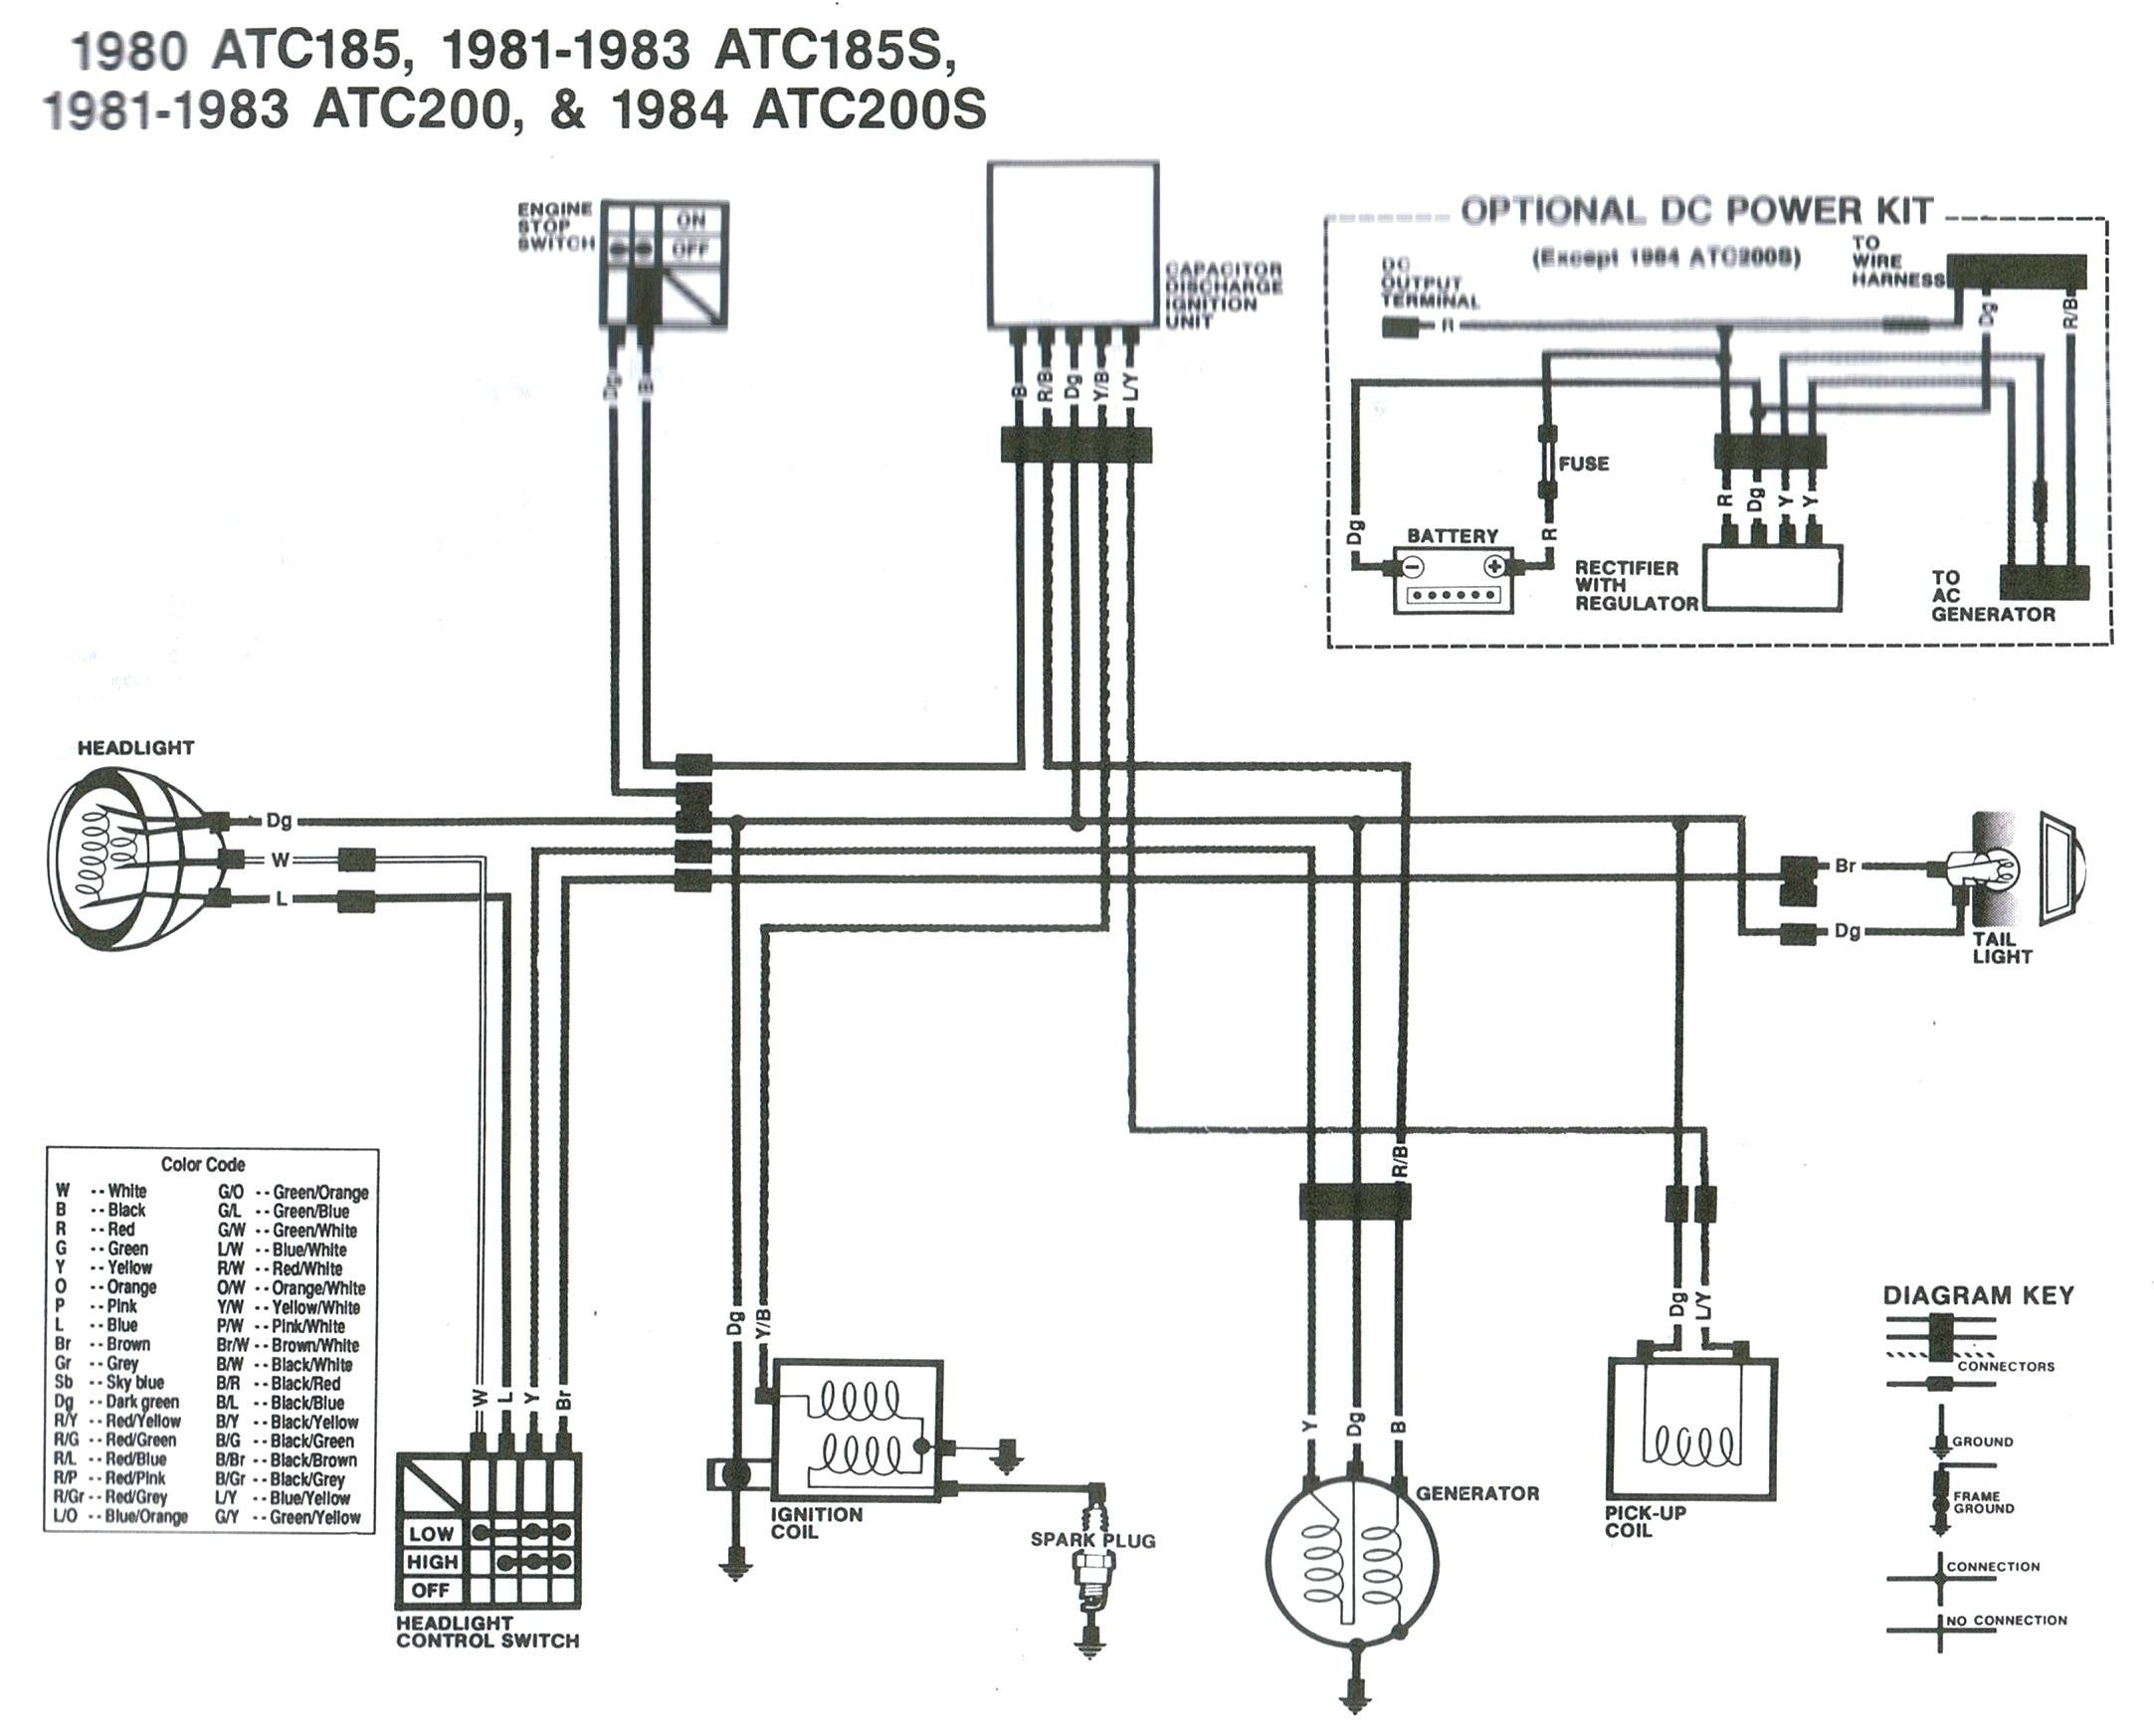 1980 Toyota Pick Up Ignition Wiring Diagram - 05 Ford Mustang Fuse Diagram  - source-auto4.yenpancane.jeanjaures37.fr | 1980 Toyota Turn Signal Wiring |  | Wiring Diagram Resource